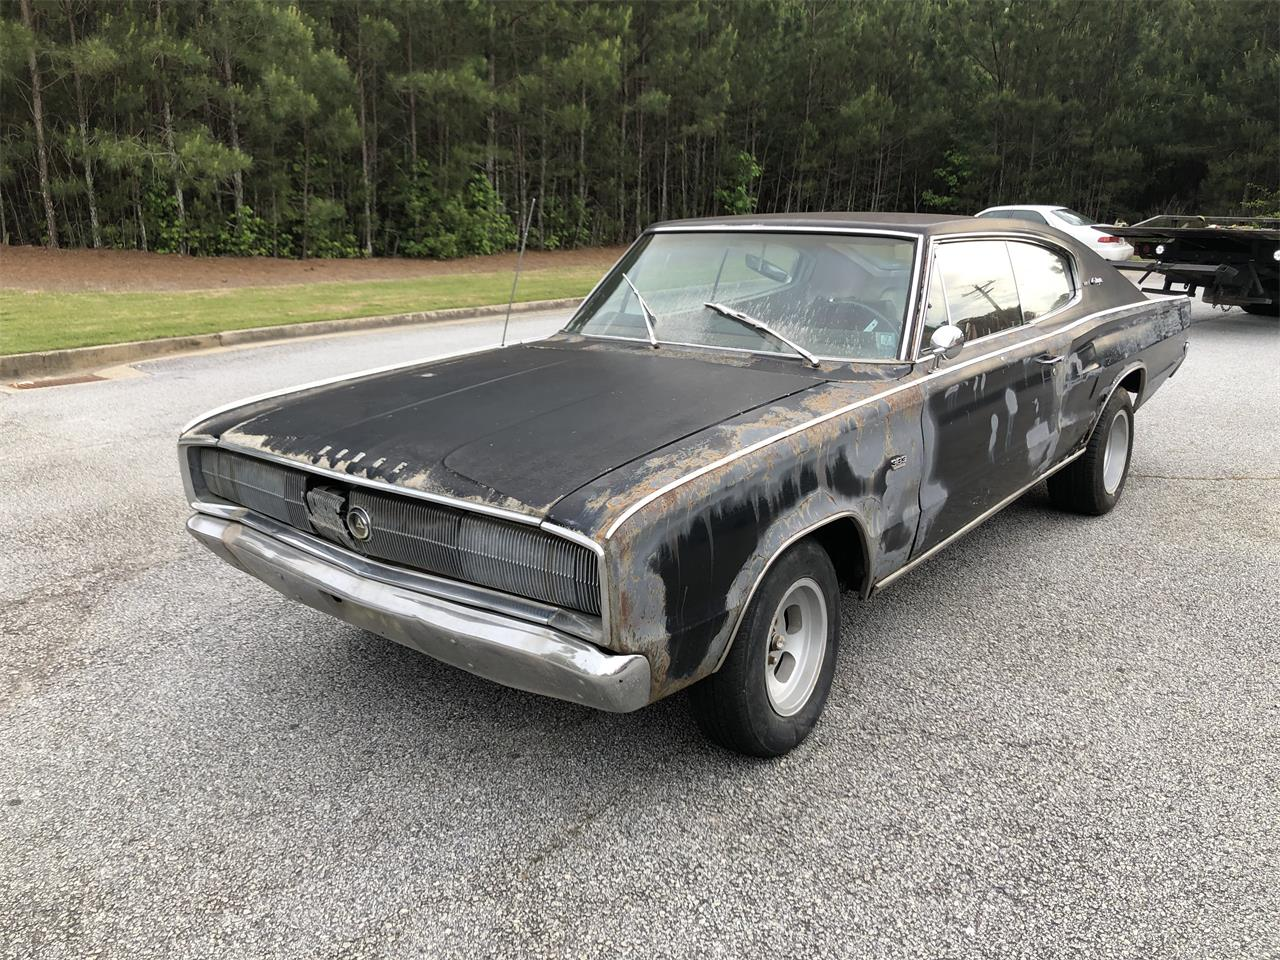 for sale 1966 dodge charger in snellville, georgia cars - snellville, ga at geebo